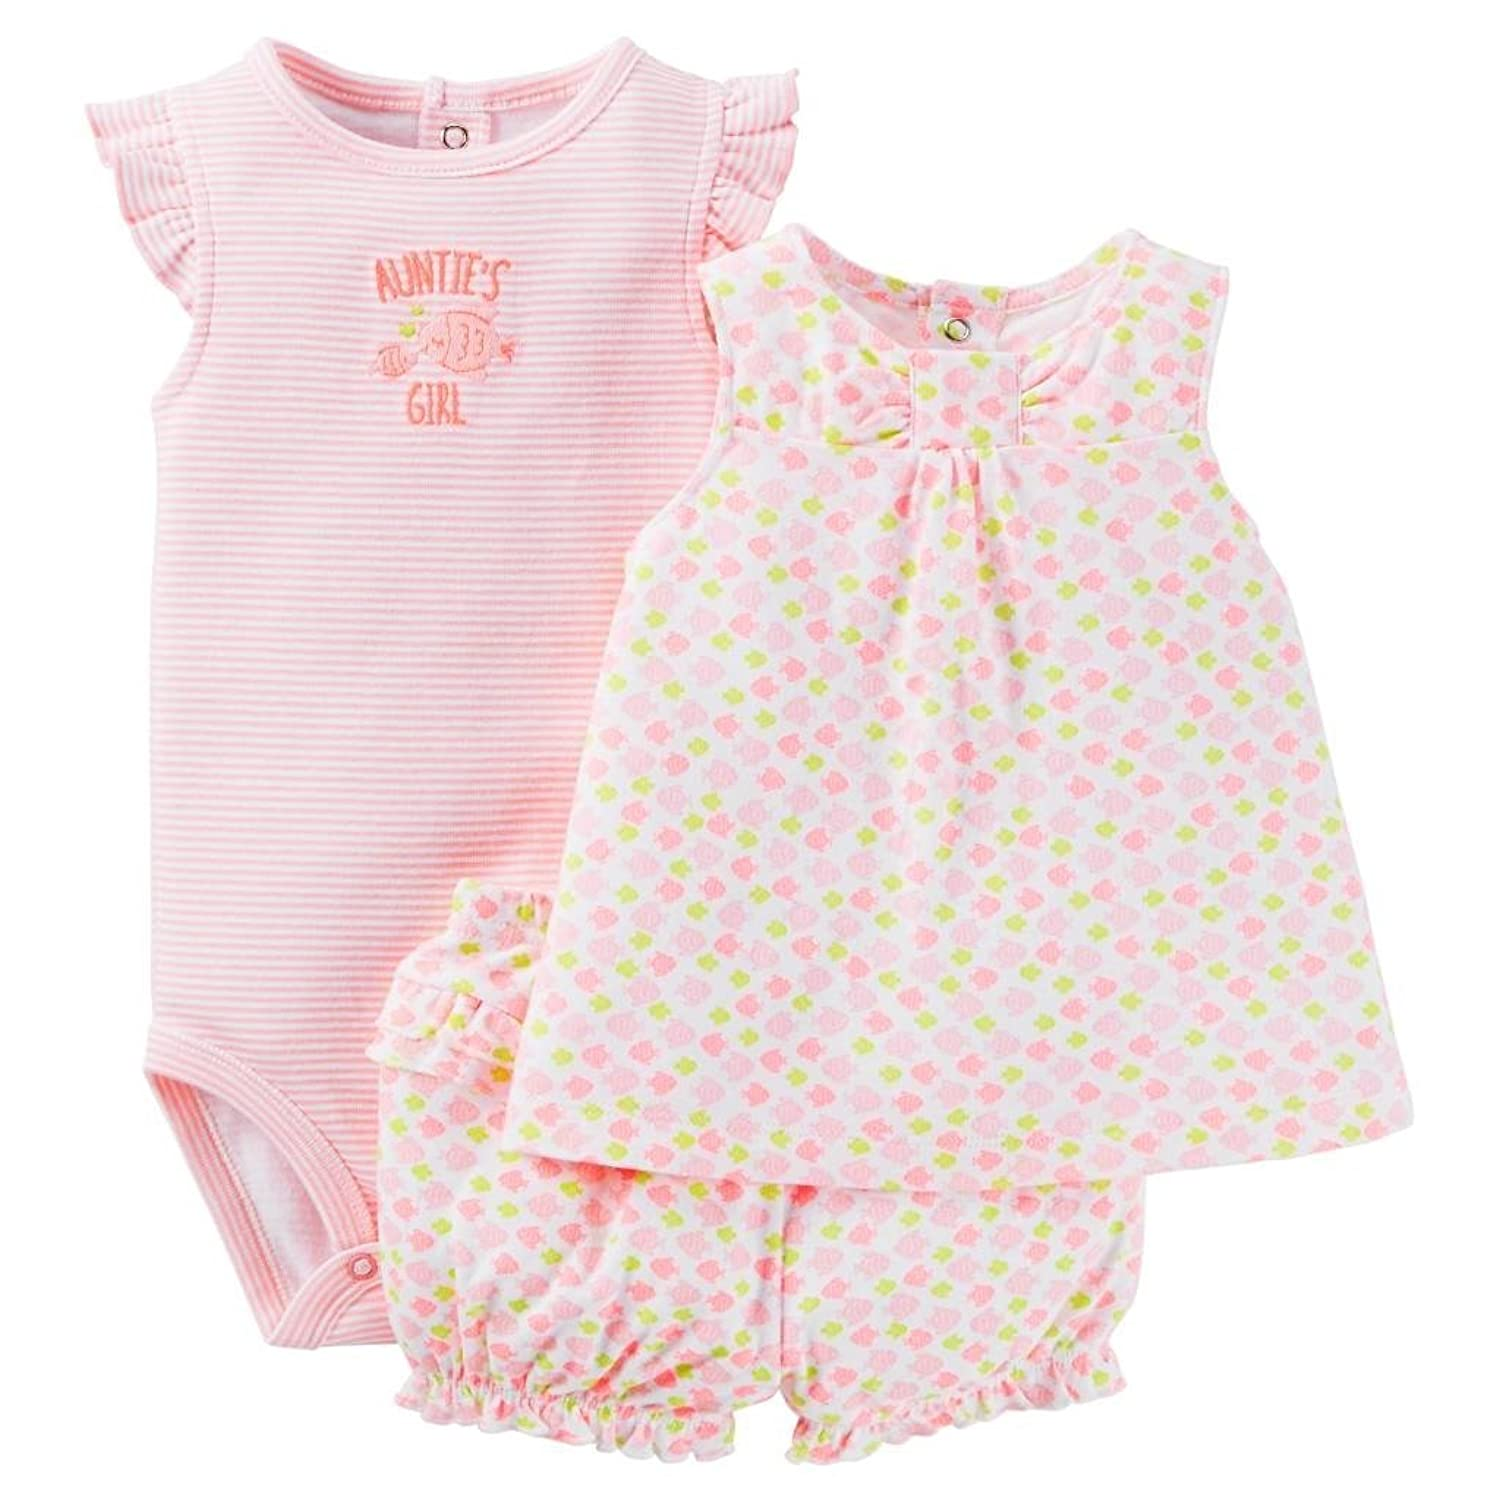 00bc77219 Carter's Just One You Baby Girls' Fishy Diaper Cover Set - Pink/Multi